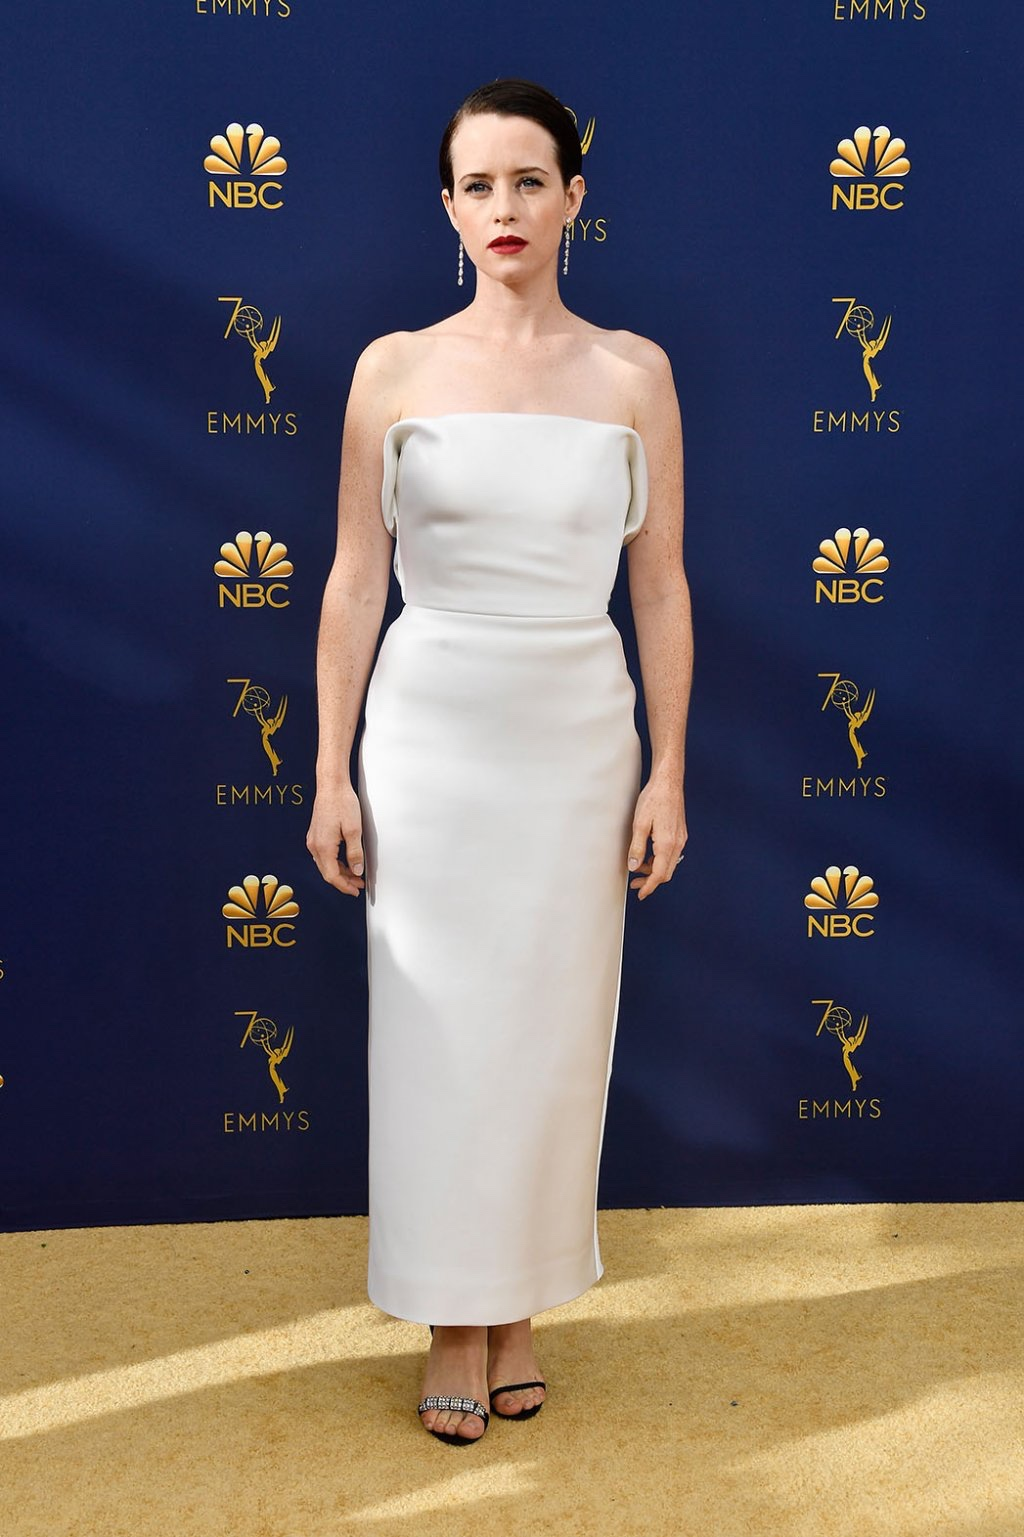 Claire Foy in Calvin Klein by Appointment, 70th Annual Primetime Emmy Awards, Betty White, Emmys 2018, Fashion, Featured, Glenn Weiss, Hannah Gadsby, highlights, Jav Svendsen, Online Exclusive, Style, The Marvellous Mrs. Maisel, top moments, We solved it, Diversity